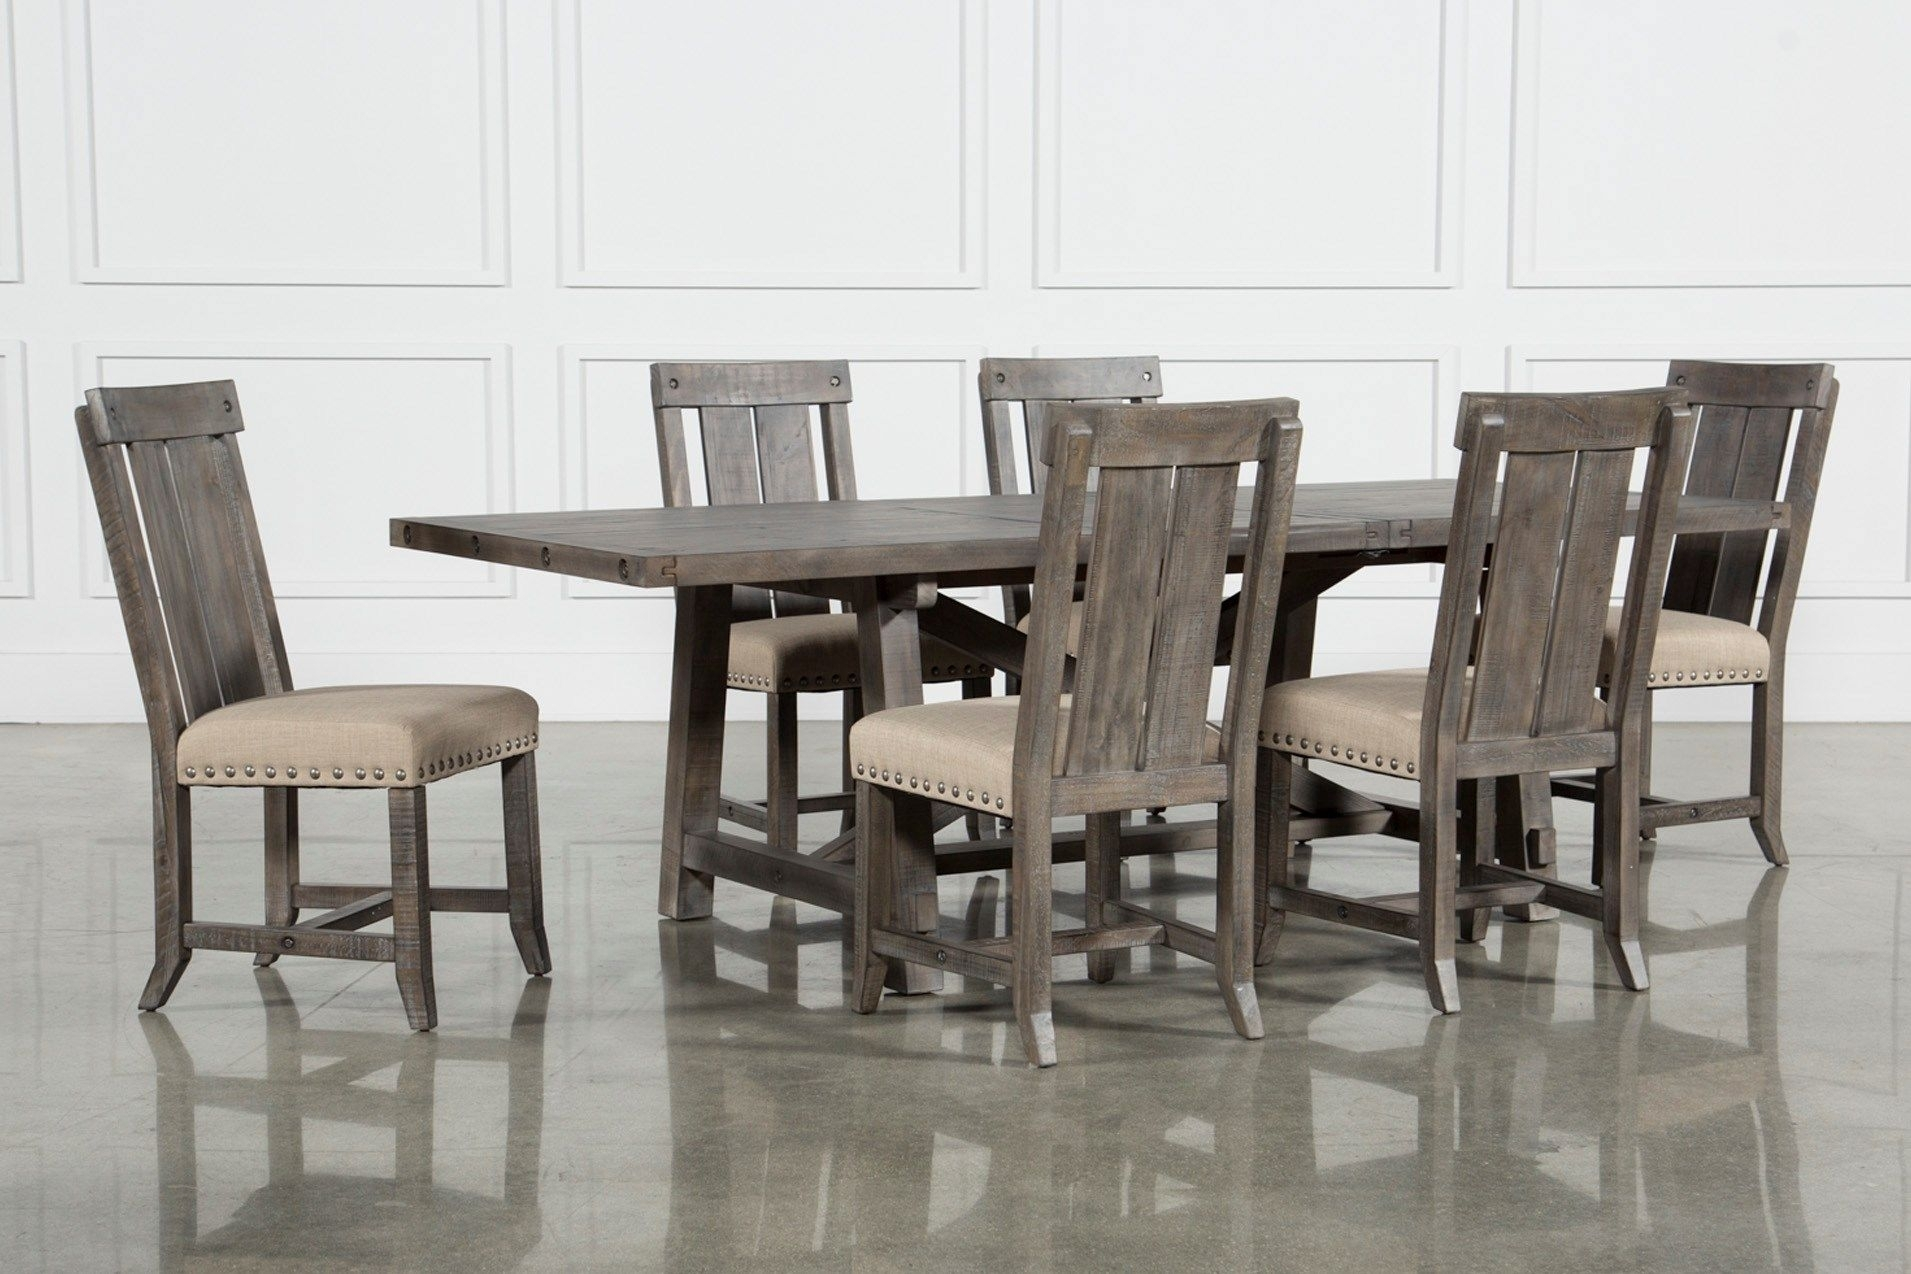 Jaxon Grey 7 Piece Rectangle Extension Dining Set W/wood Chairs With Regard To 2018 Chandler 7 Piece Extension Dining Sets With Fabric Side Chairs (View 5 of 20)